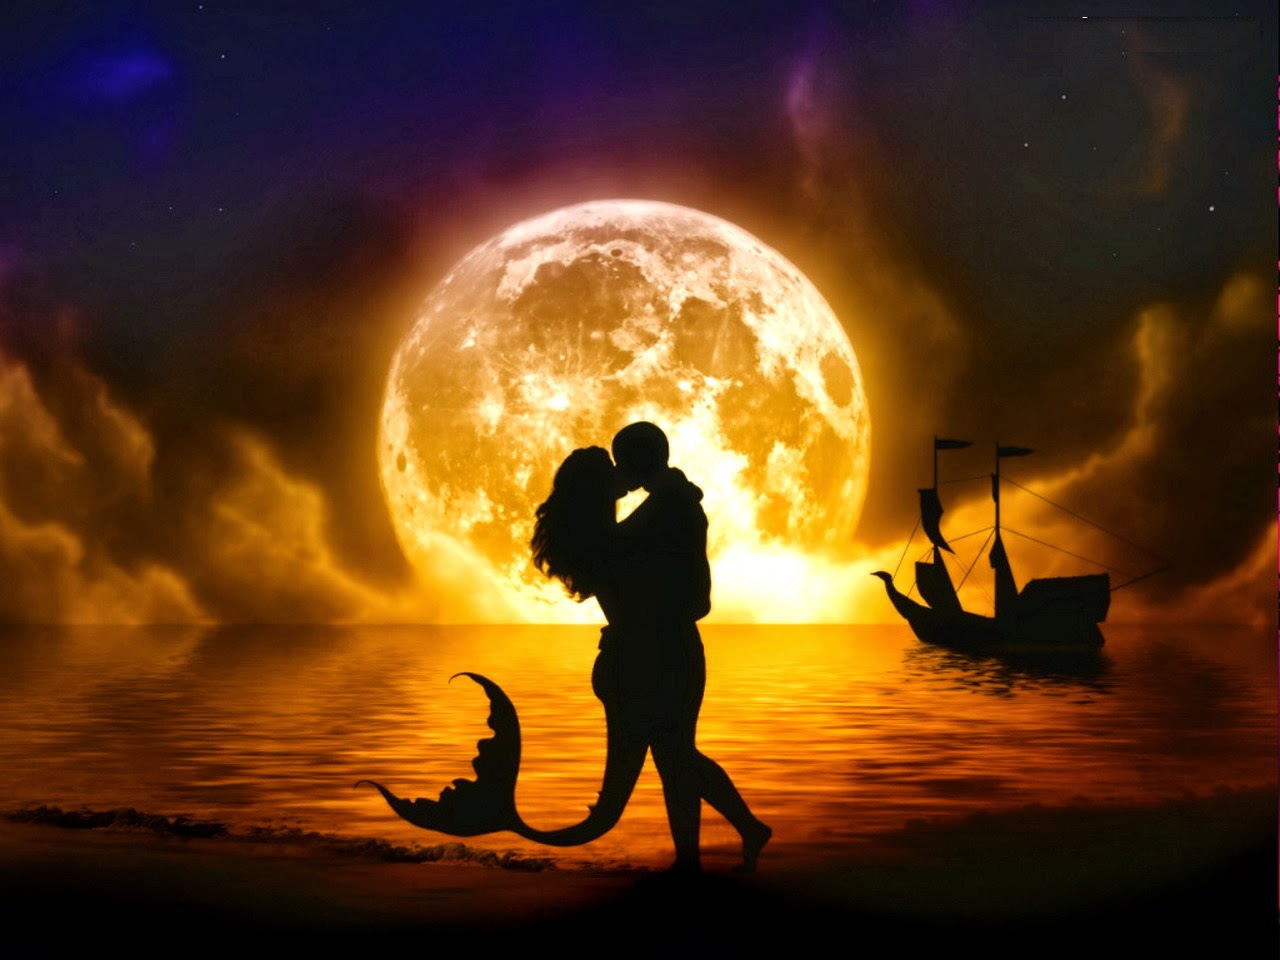 Romantic-Lovers-hug-and-kiss-wallpaper-images-HD-free-download.jpg